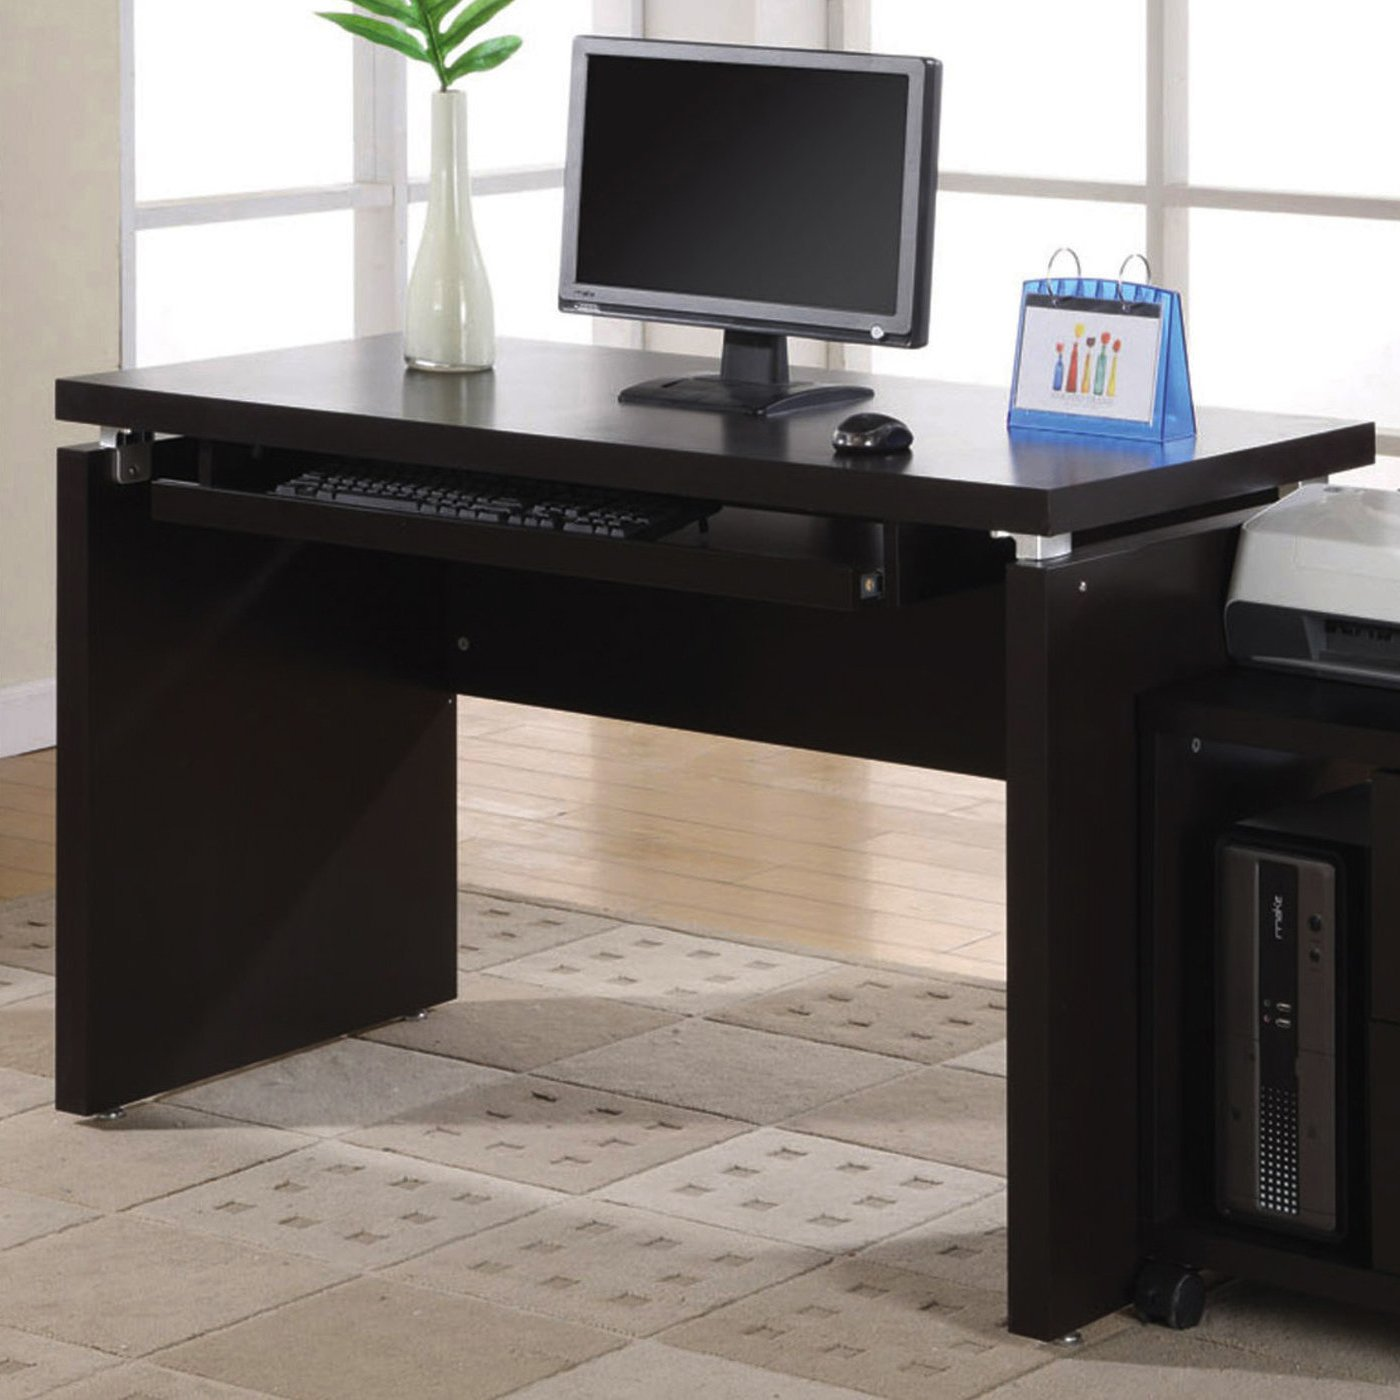 computer education zioxi vm table with chair t up desk